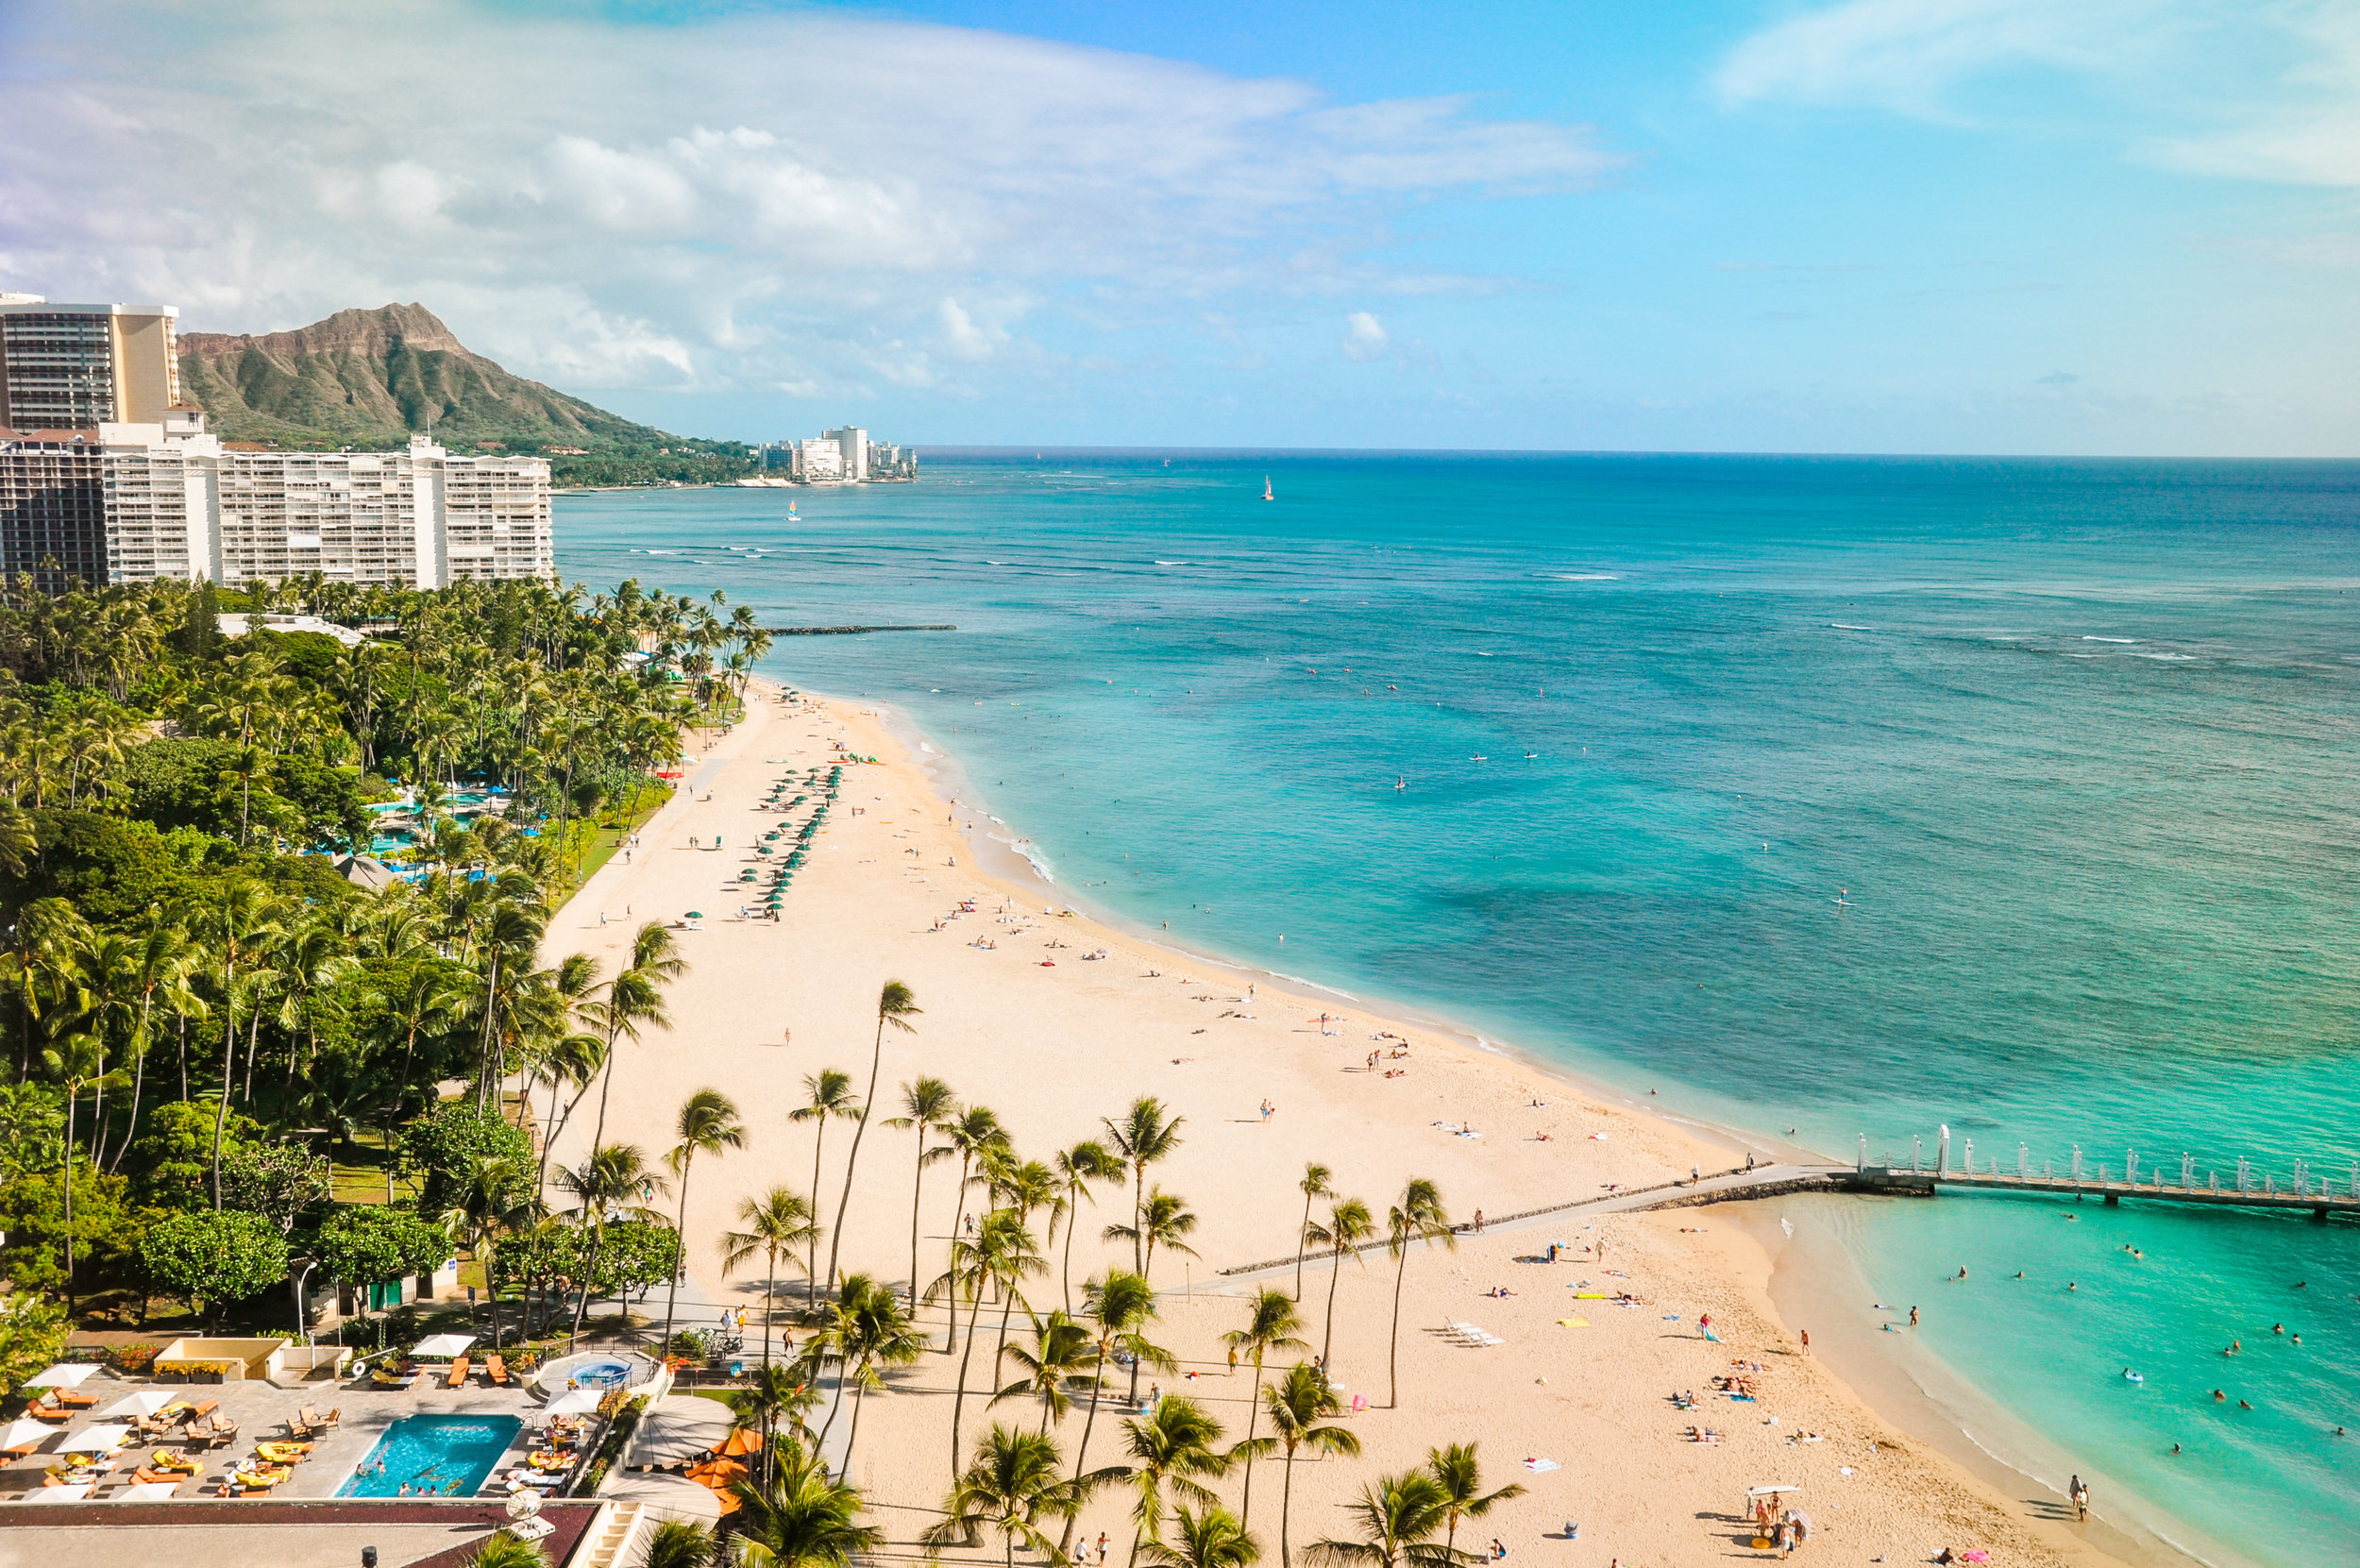 beach-landscape-ocean-scenic-view-paradise-hawaii-honolulu-waikiki-diamond-head_t20_AeEoVW.jpg